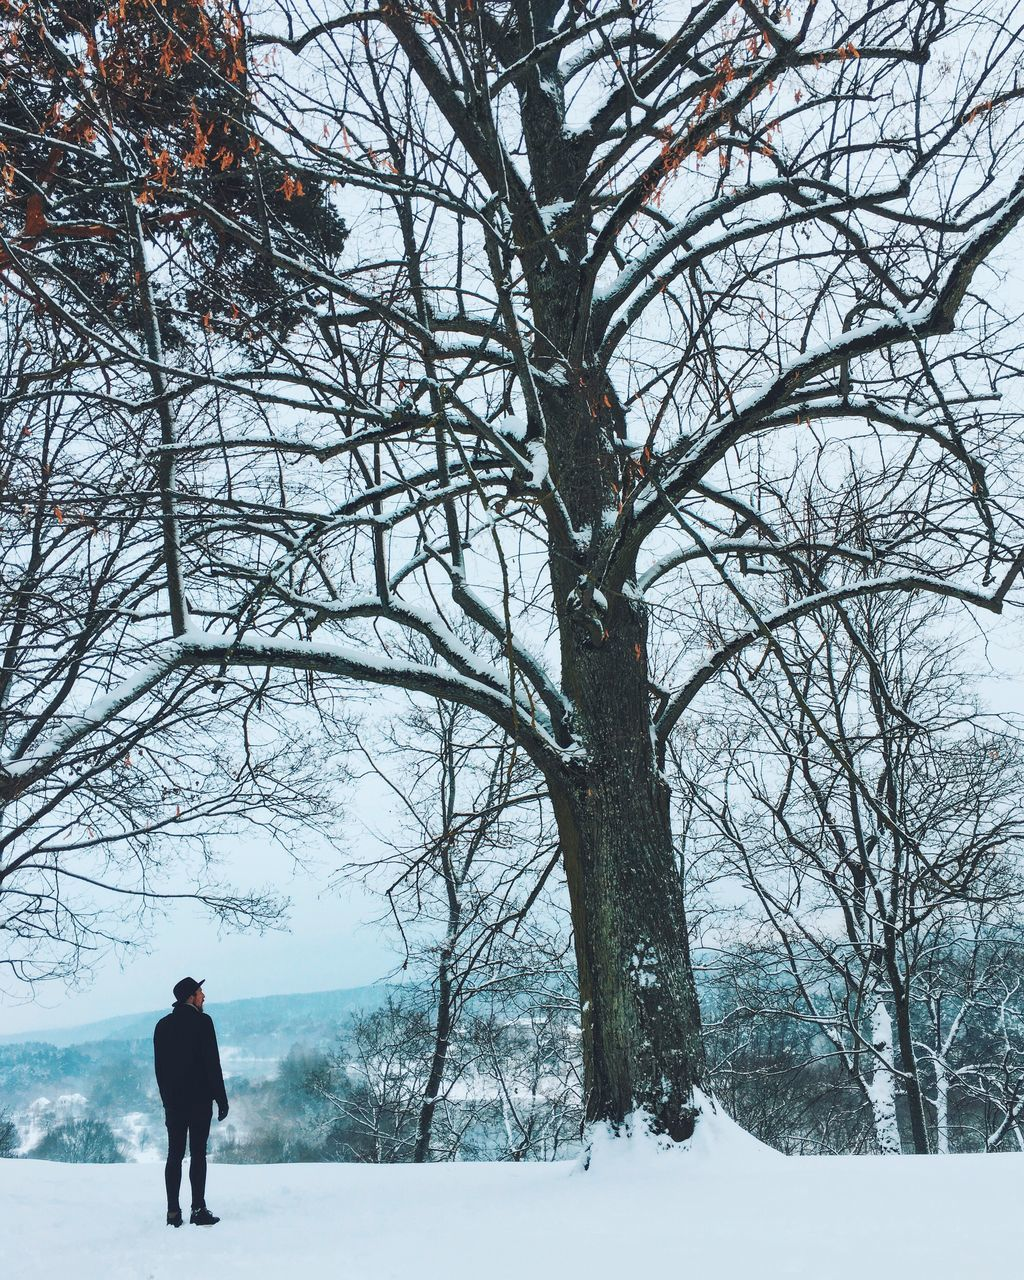 bare tree, winter, tree, real people, full length, cold temperature, nature, walking, snow, men, outdoors, leisure activity, lifestyles, day, branch, beauty in nature, sky, young adult, adult, people